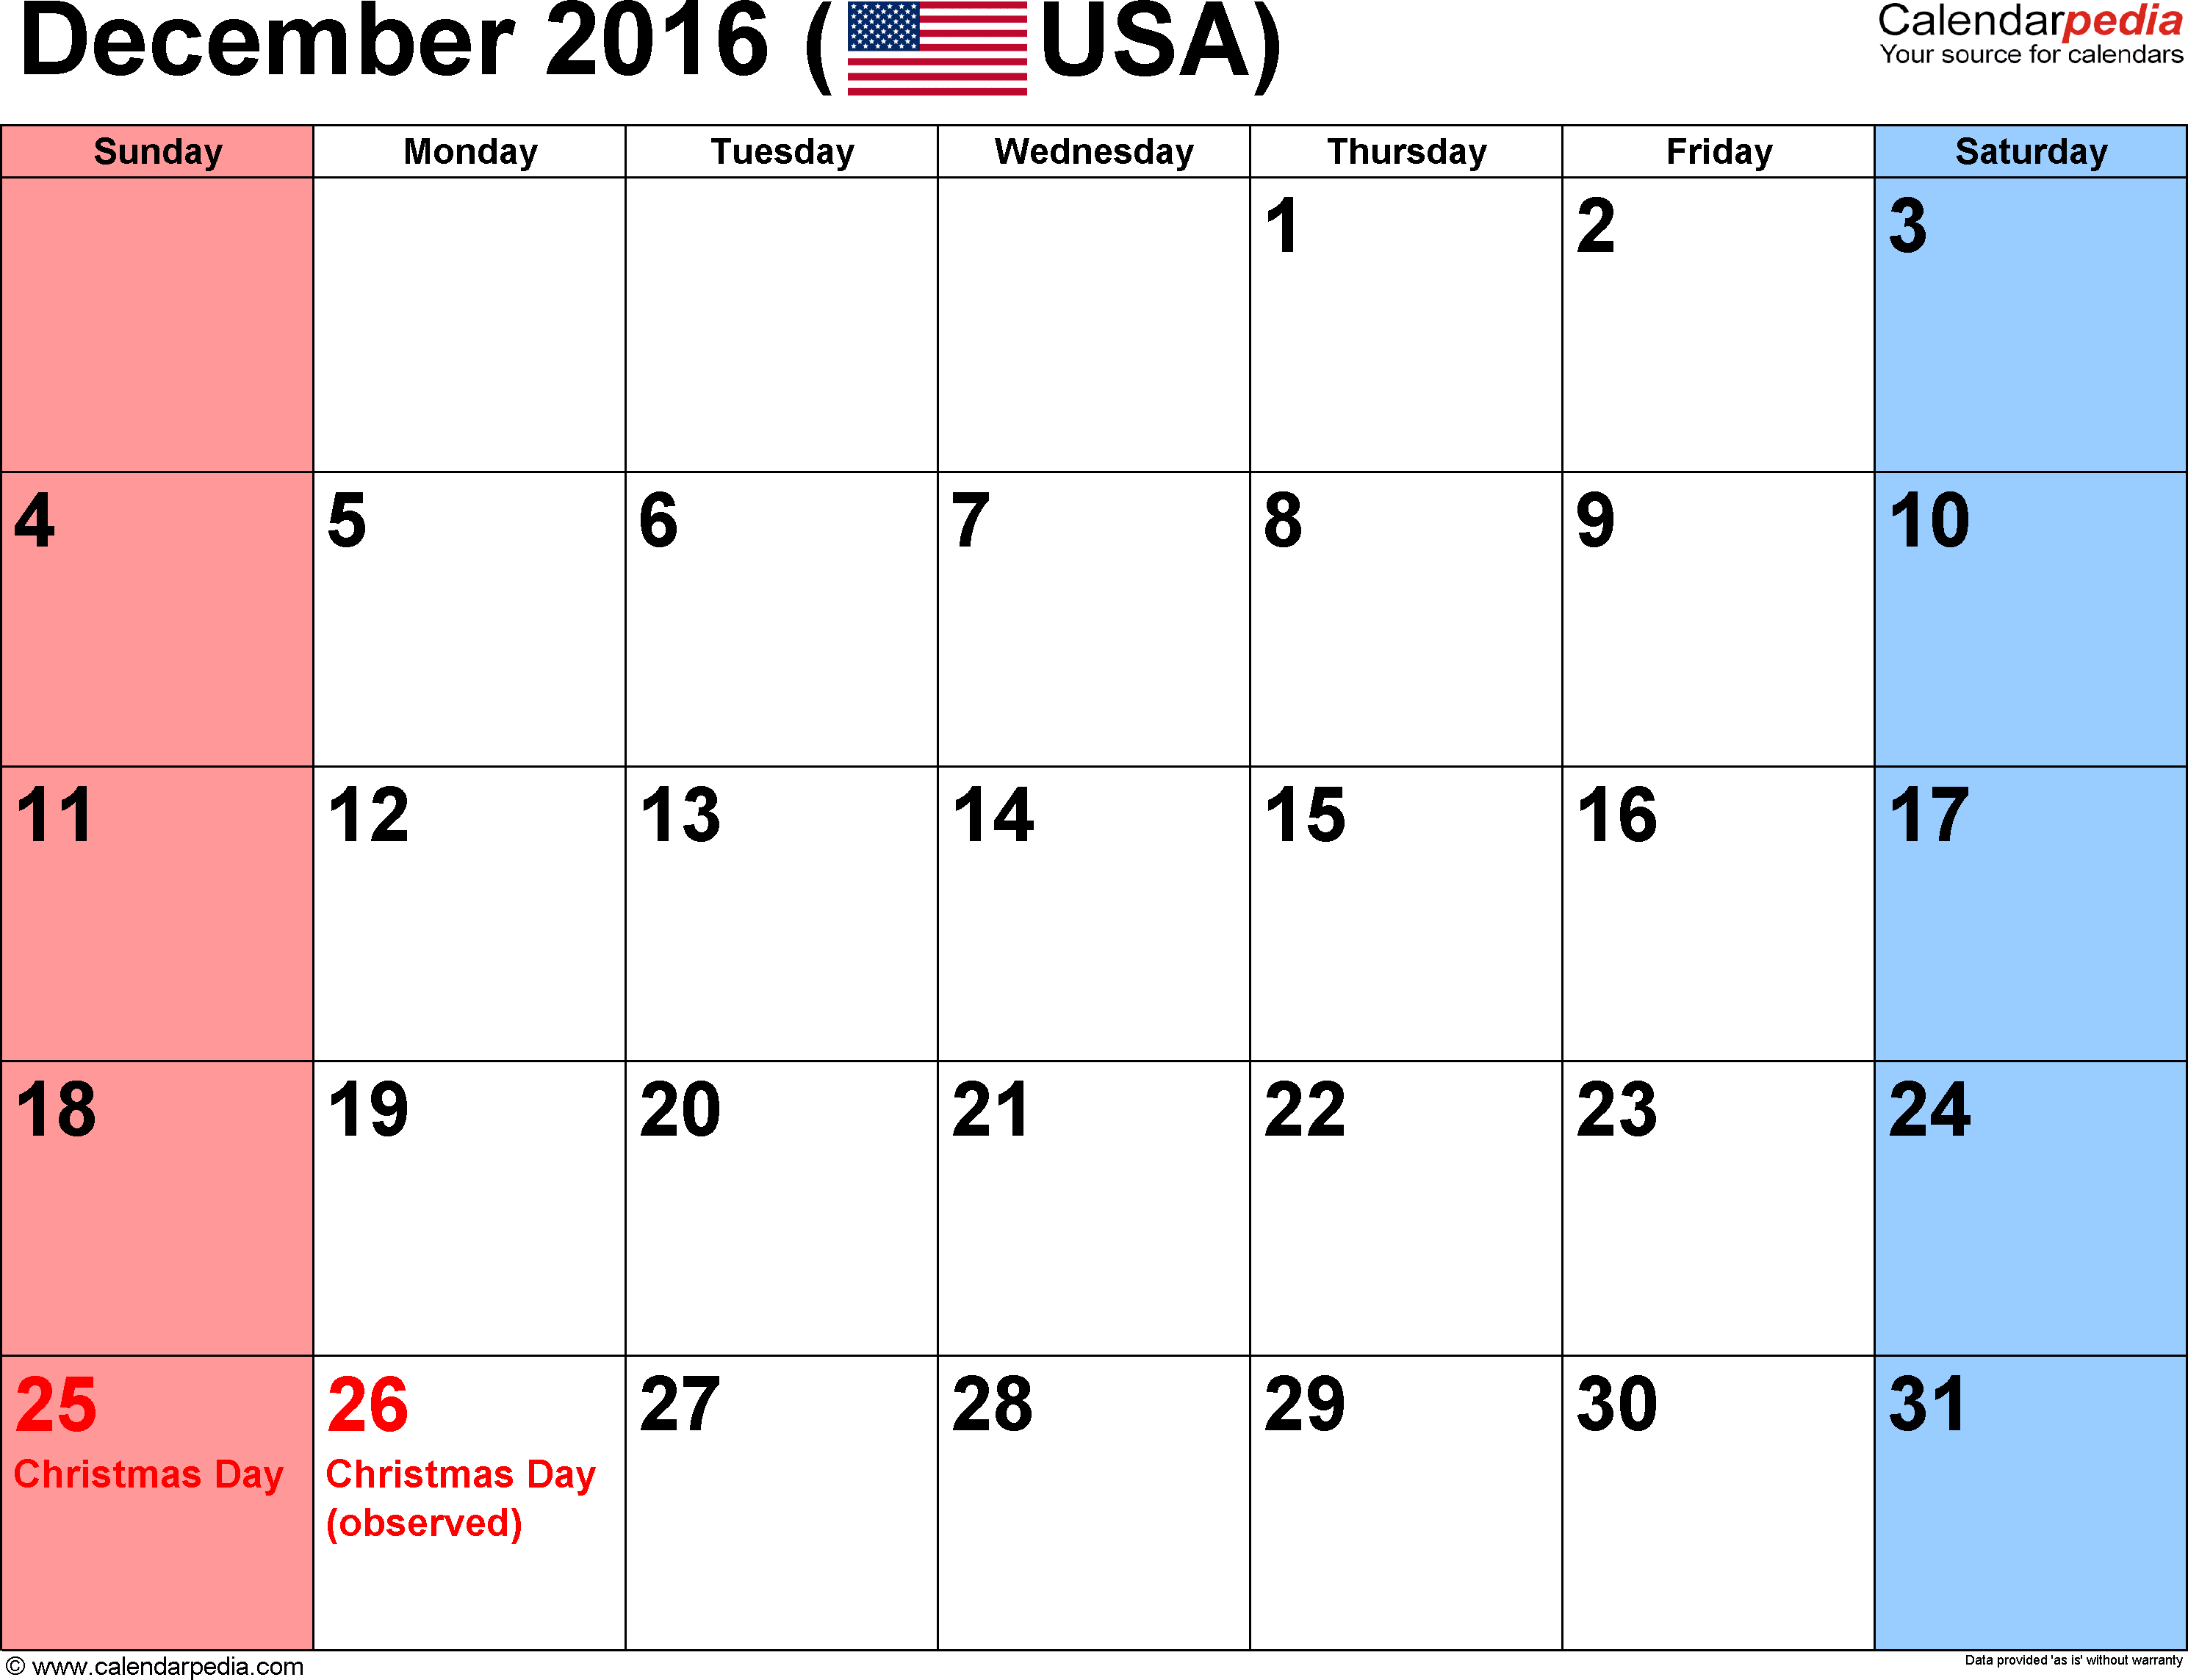 December 2016 Calendars for Word, Excel & PDF